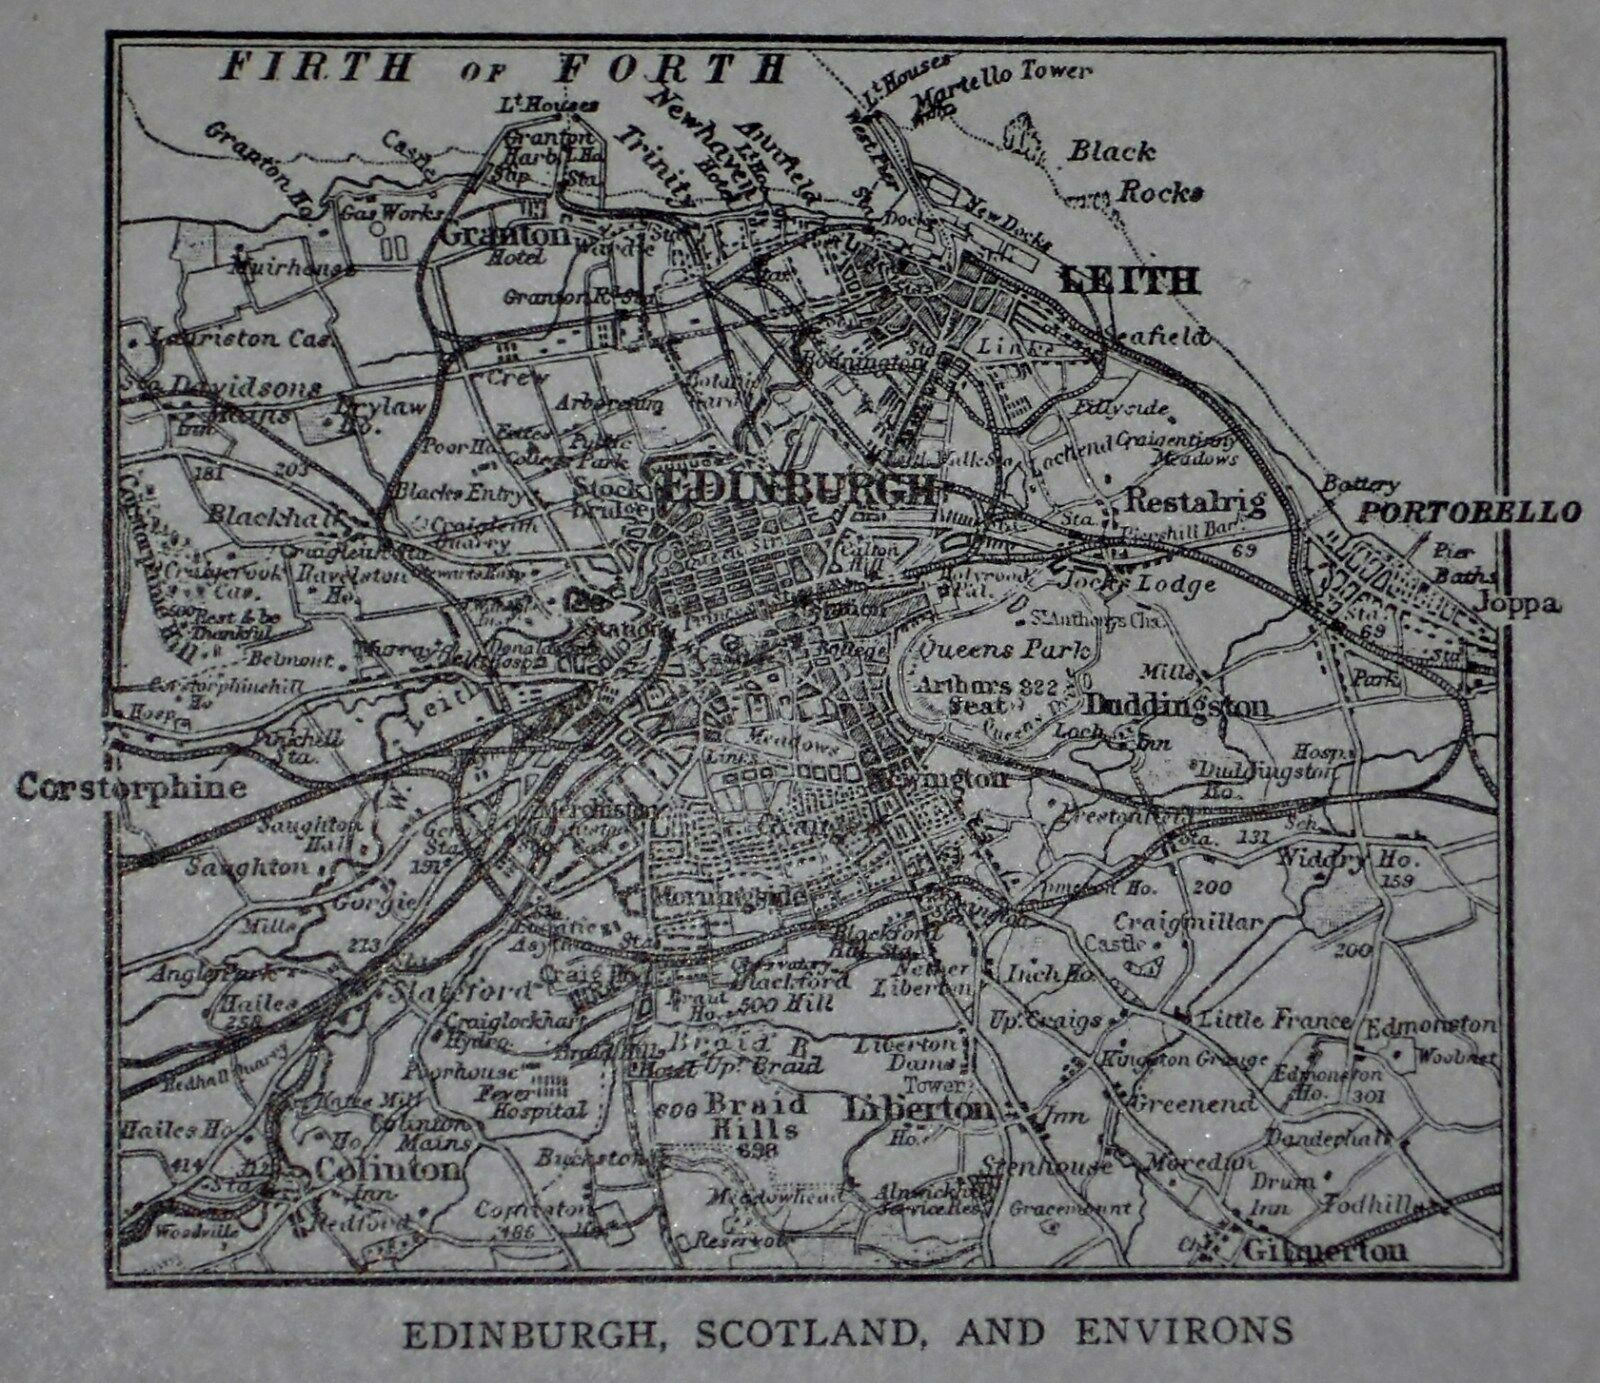 Lk sm antique 1917 world atlas maps of dundee edinburgh 6 of 12 lk sm antique 1917 world atlas maps of dundee edinburgh scotland gumiabroncs Image collections